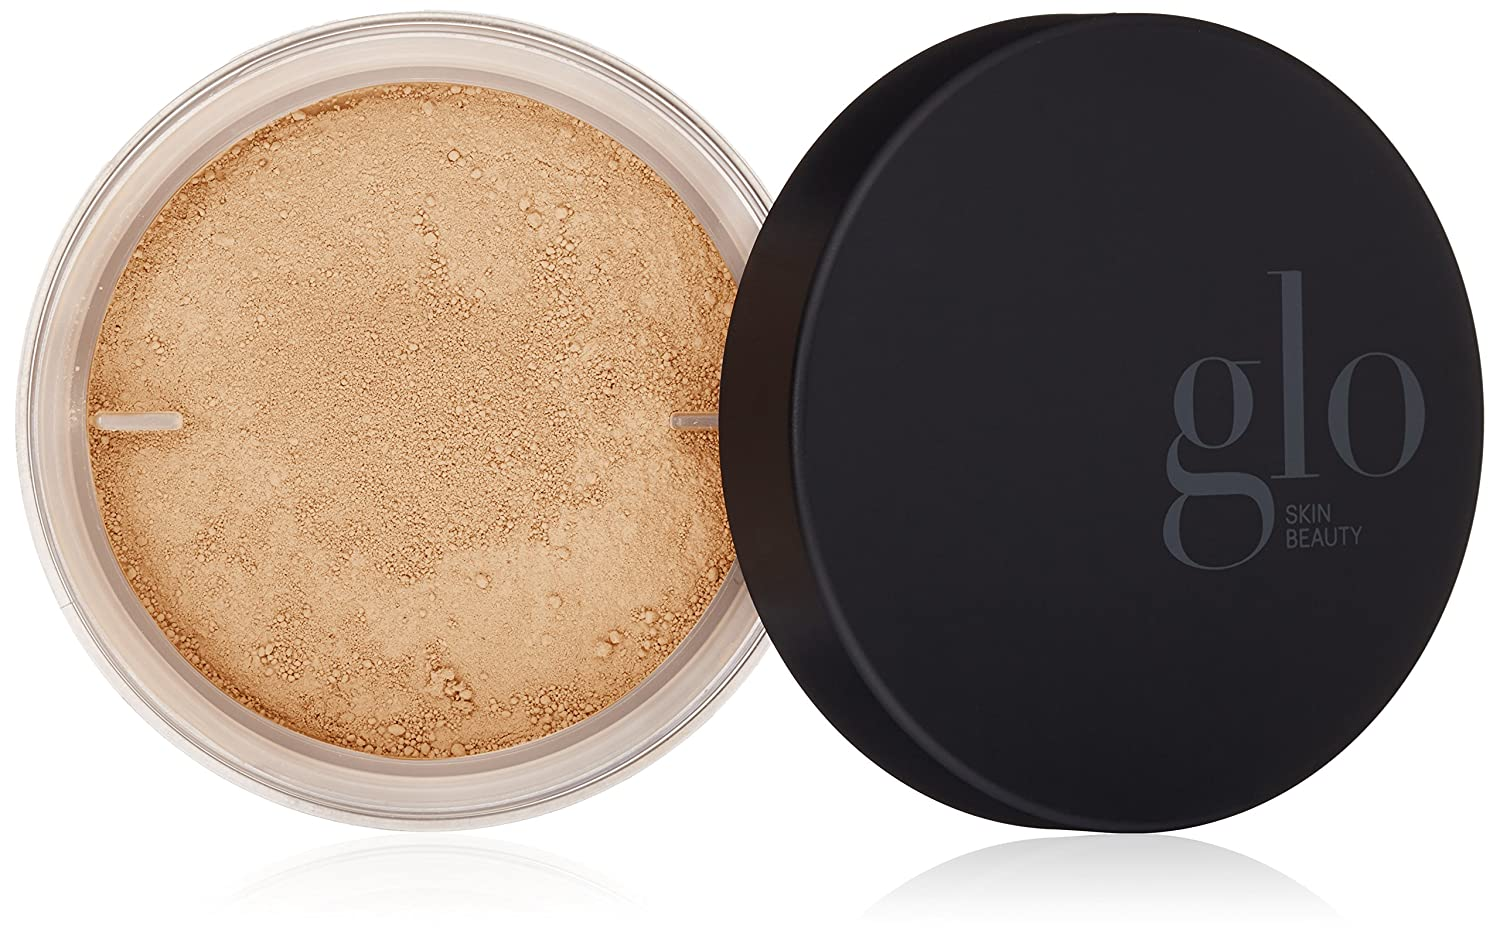 Glo Skin Beauty Loose Base Makeup Powder Foundation